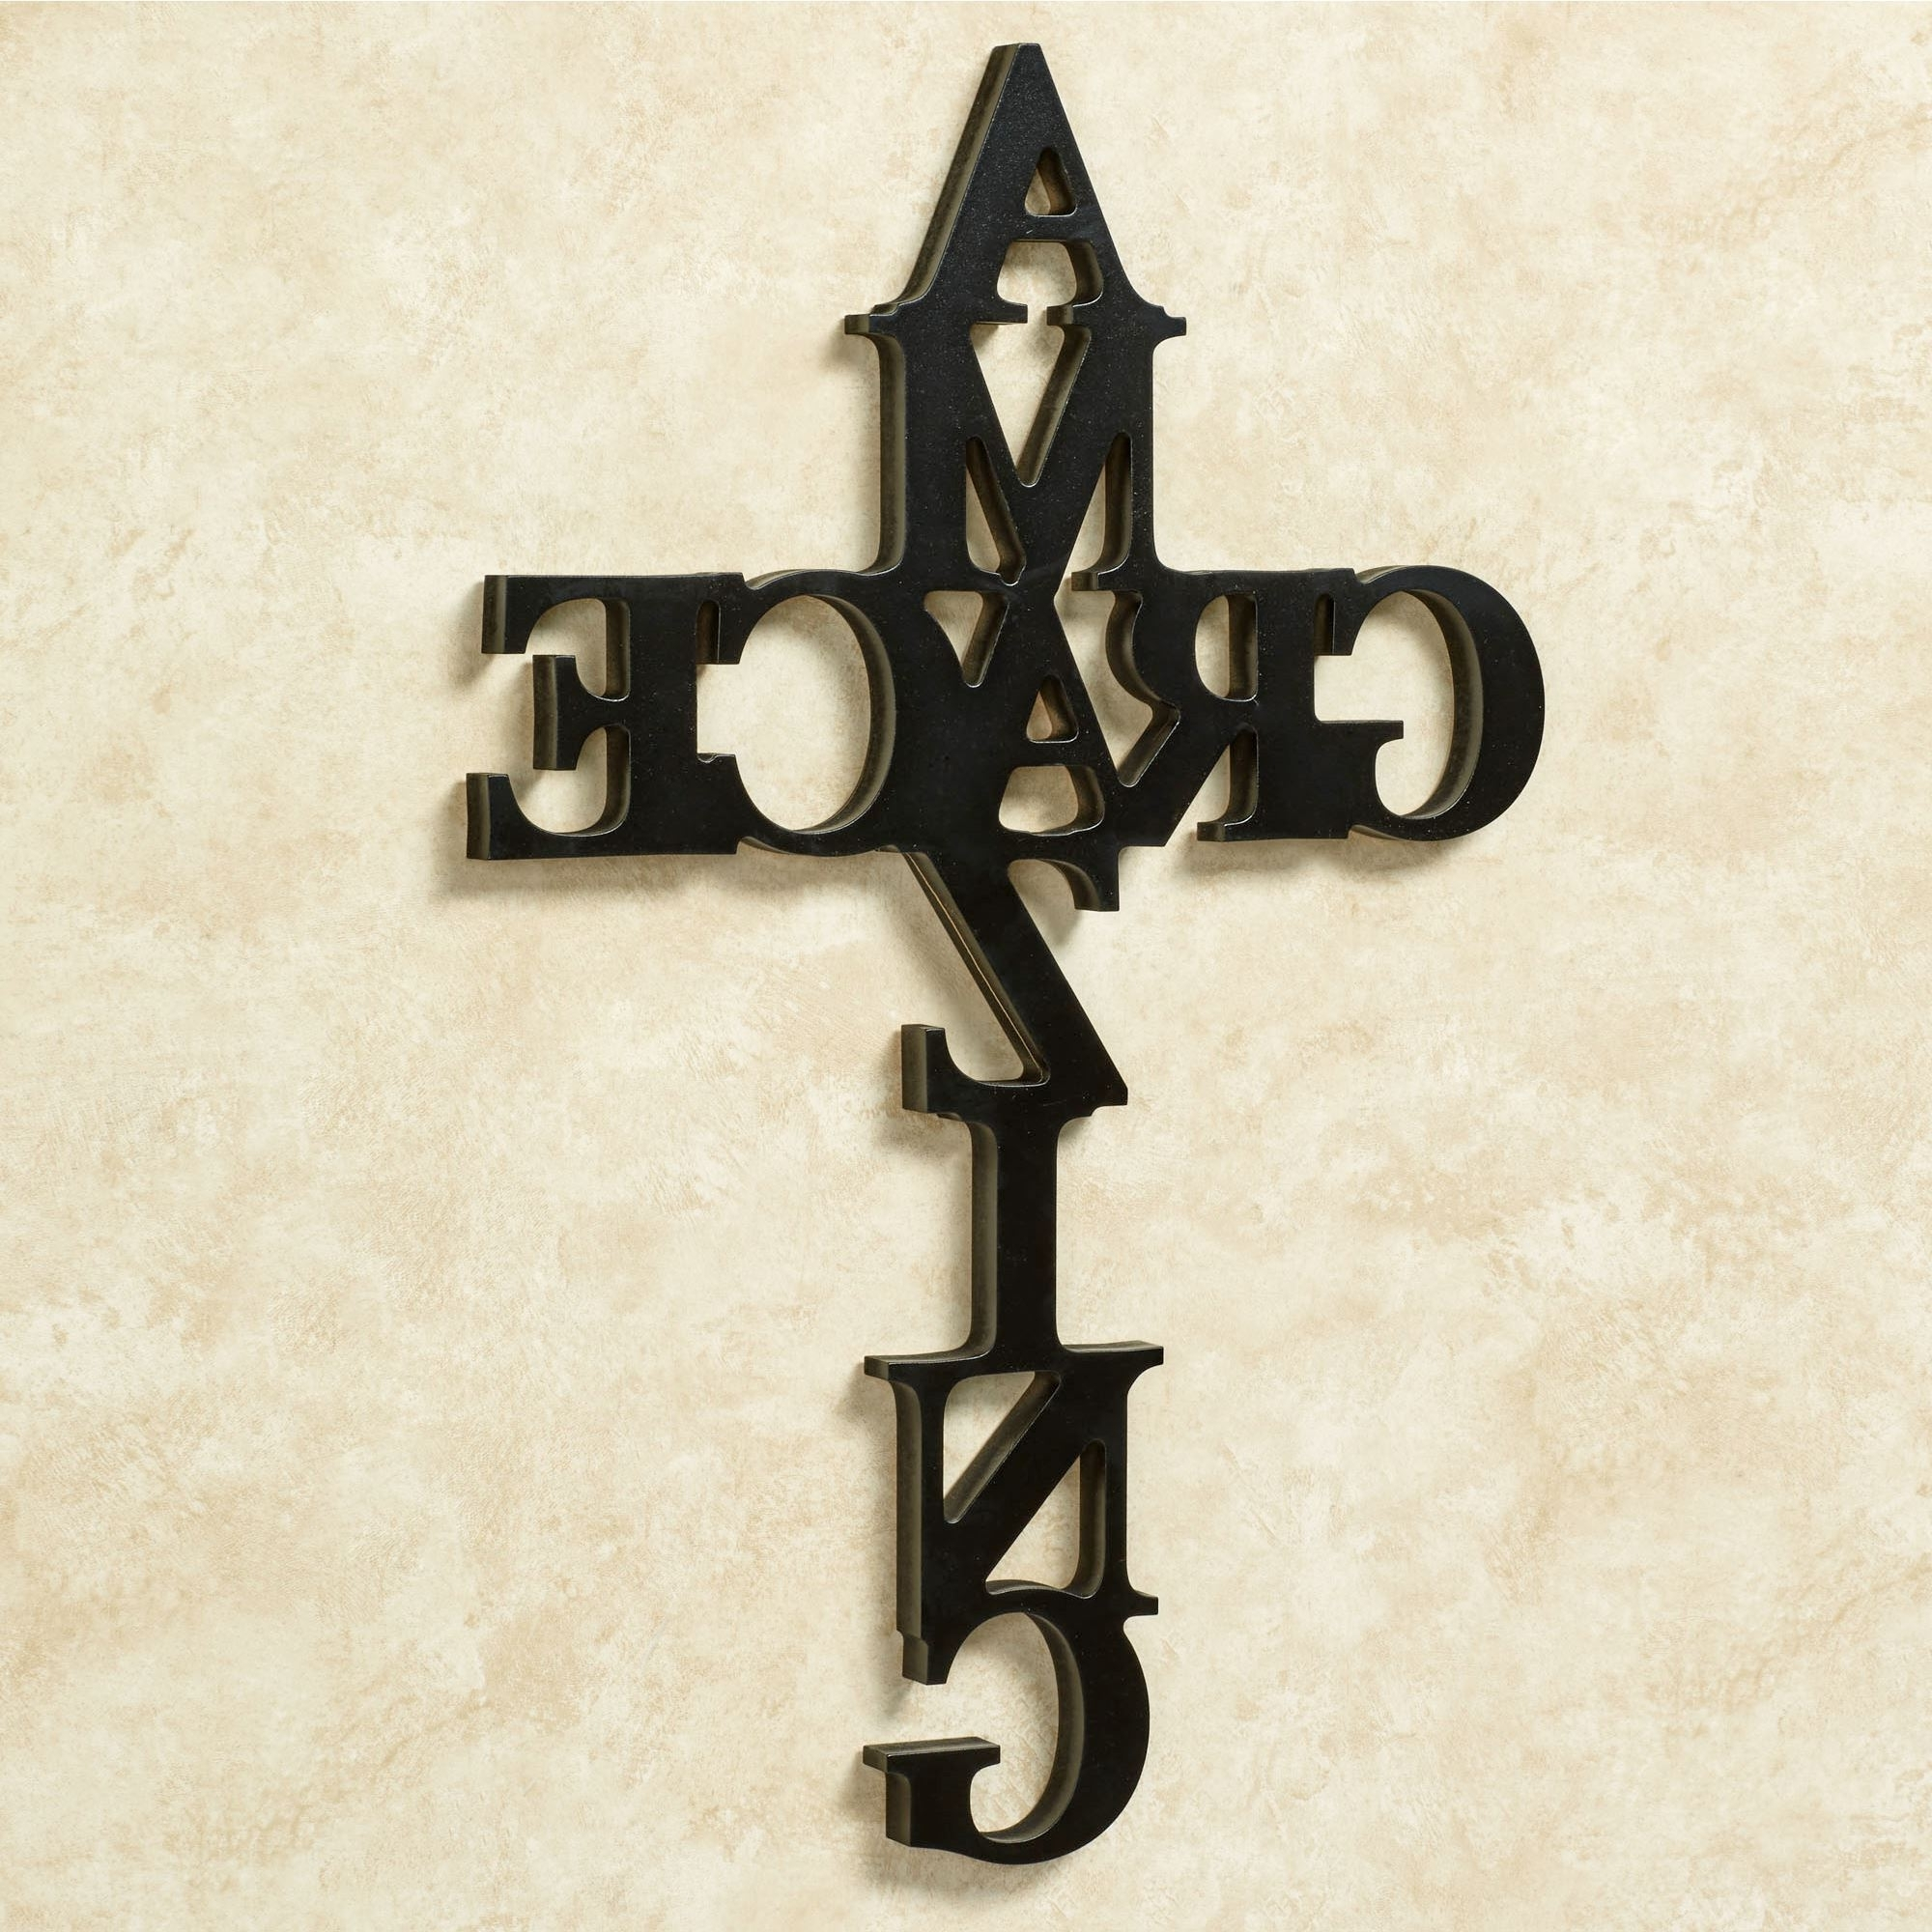 Amazing Grace Word Cross Wall Art Intended For Popular Grace Wall Art (View 2 of 15)